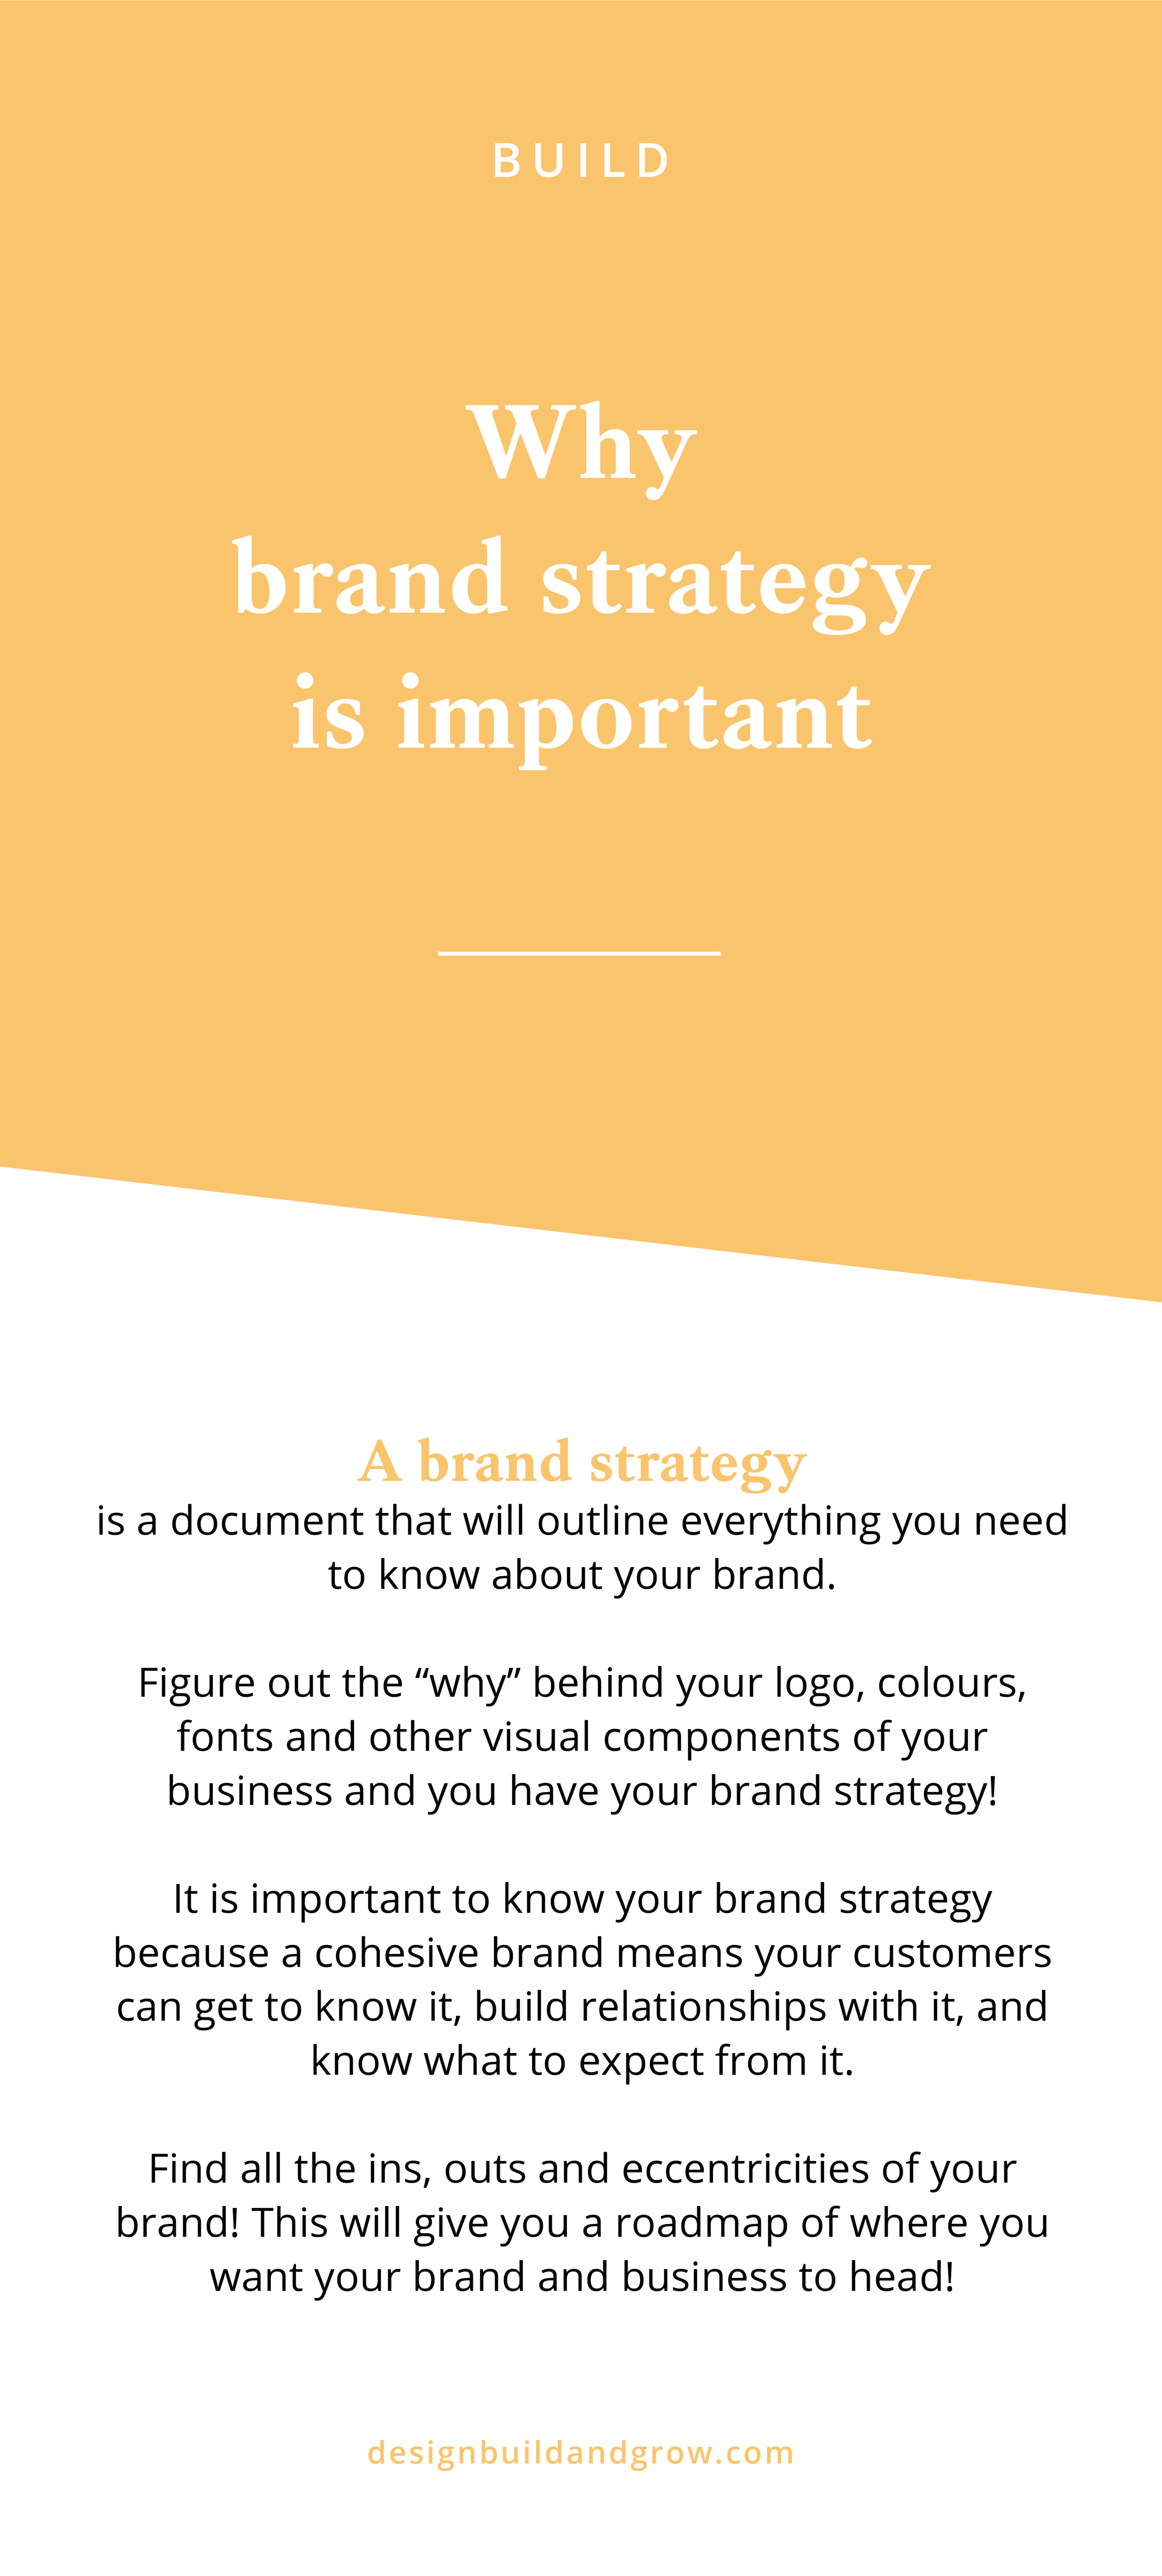 Why brand strategy is important and what it is